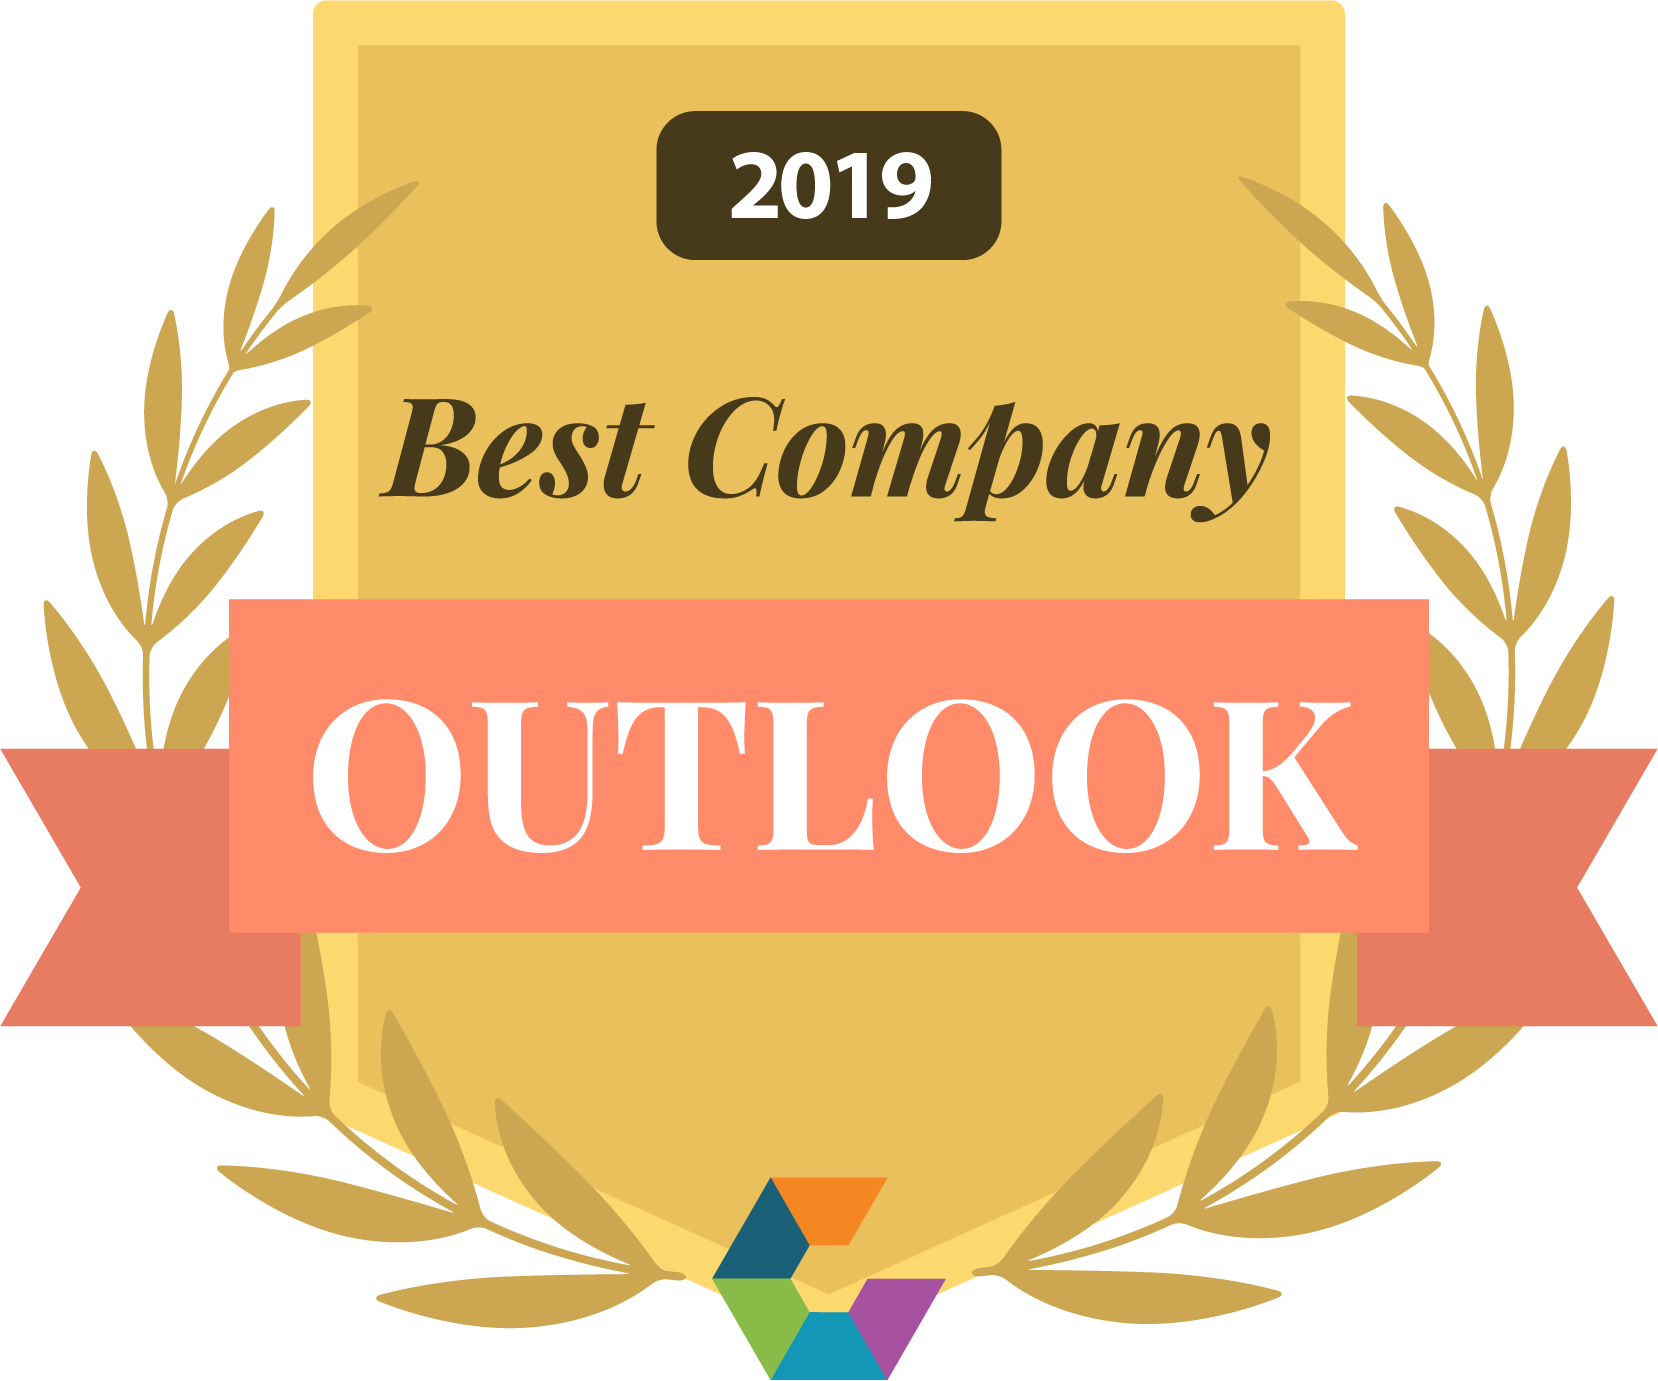 top-rated-outlook-of-2019-large